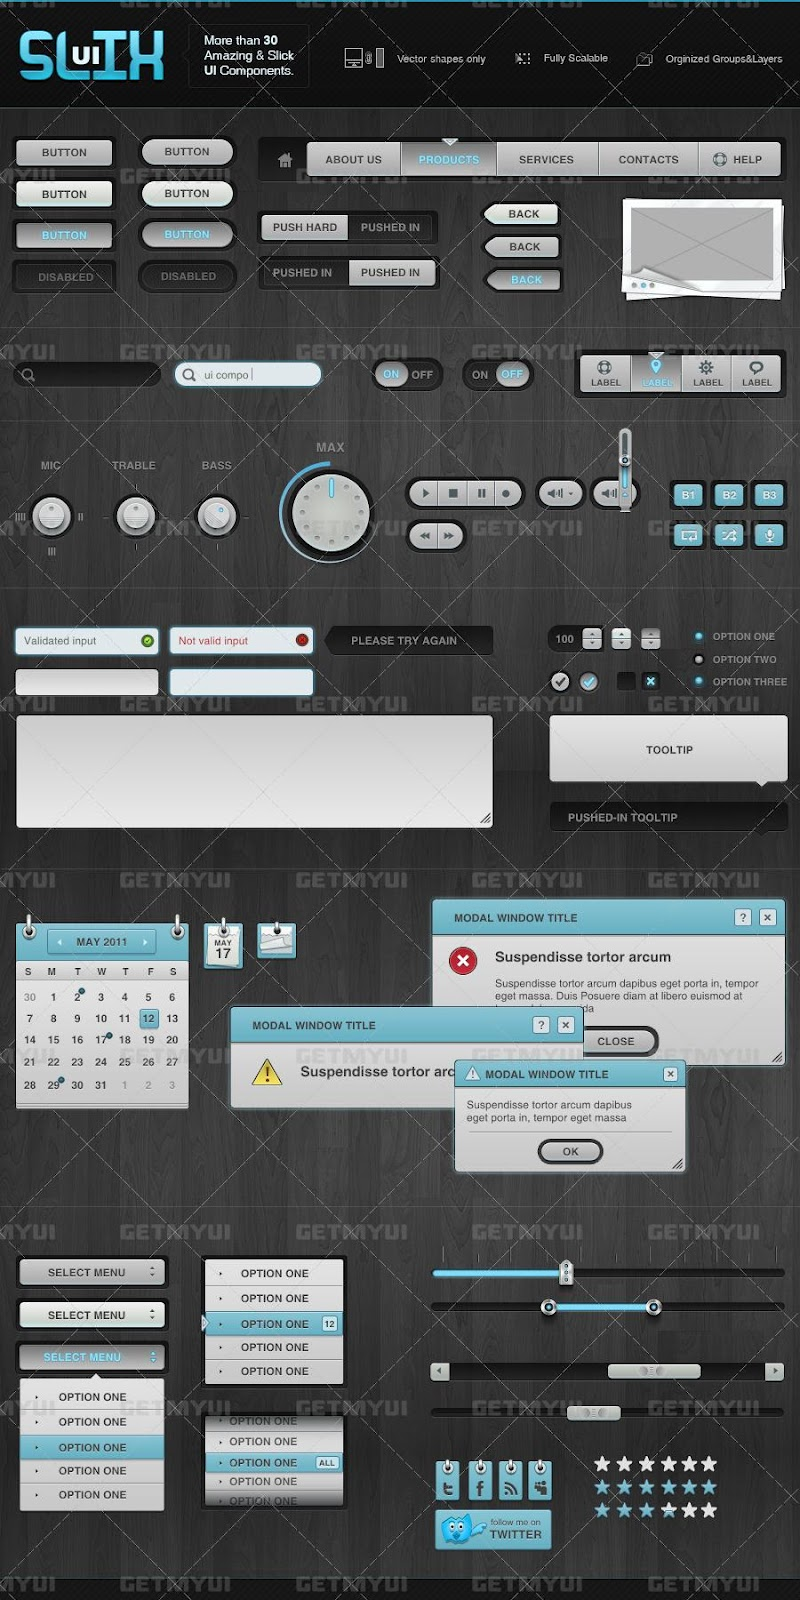 Slix UI - Free User Interface Pack for Mobile Devices